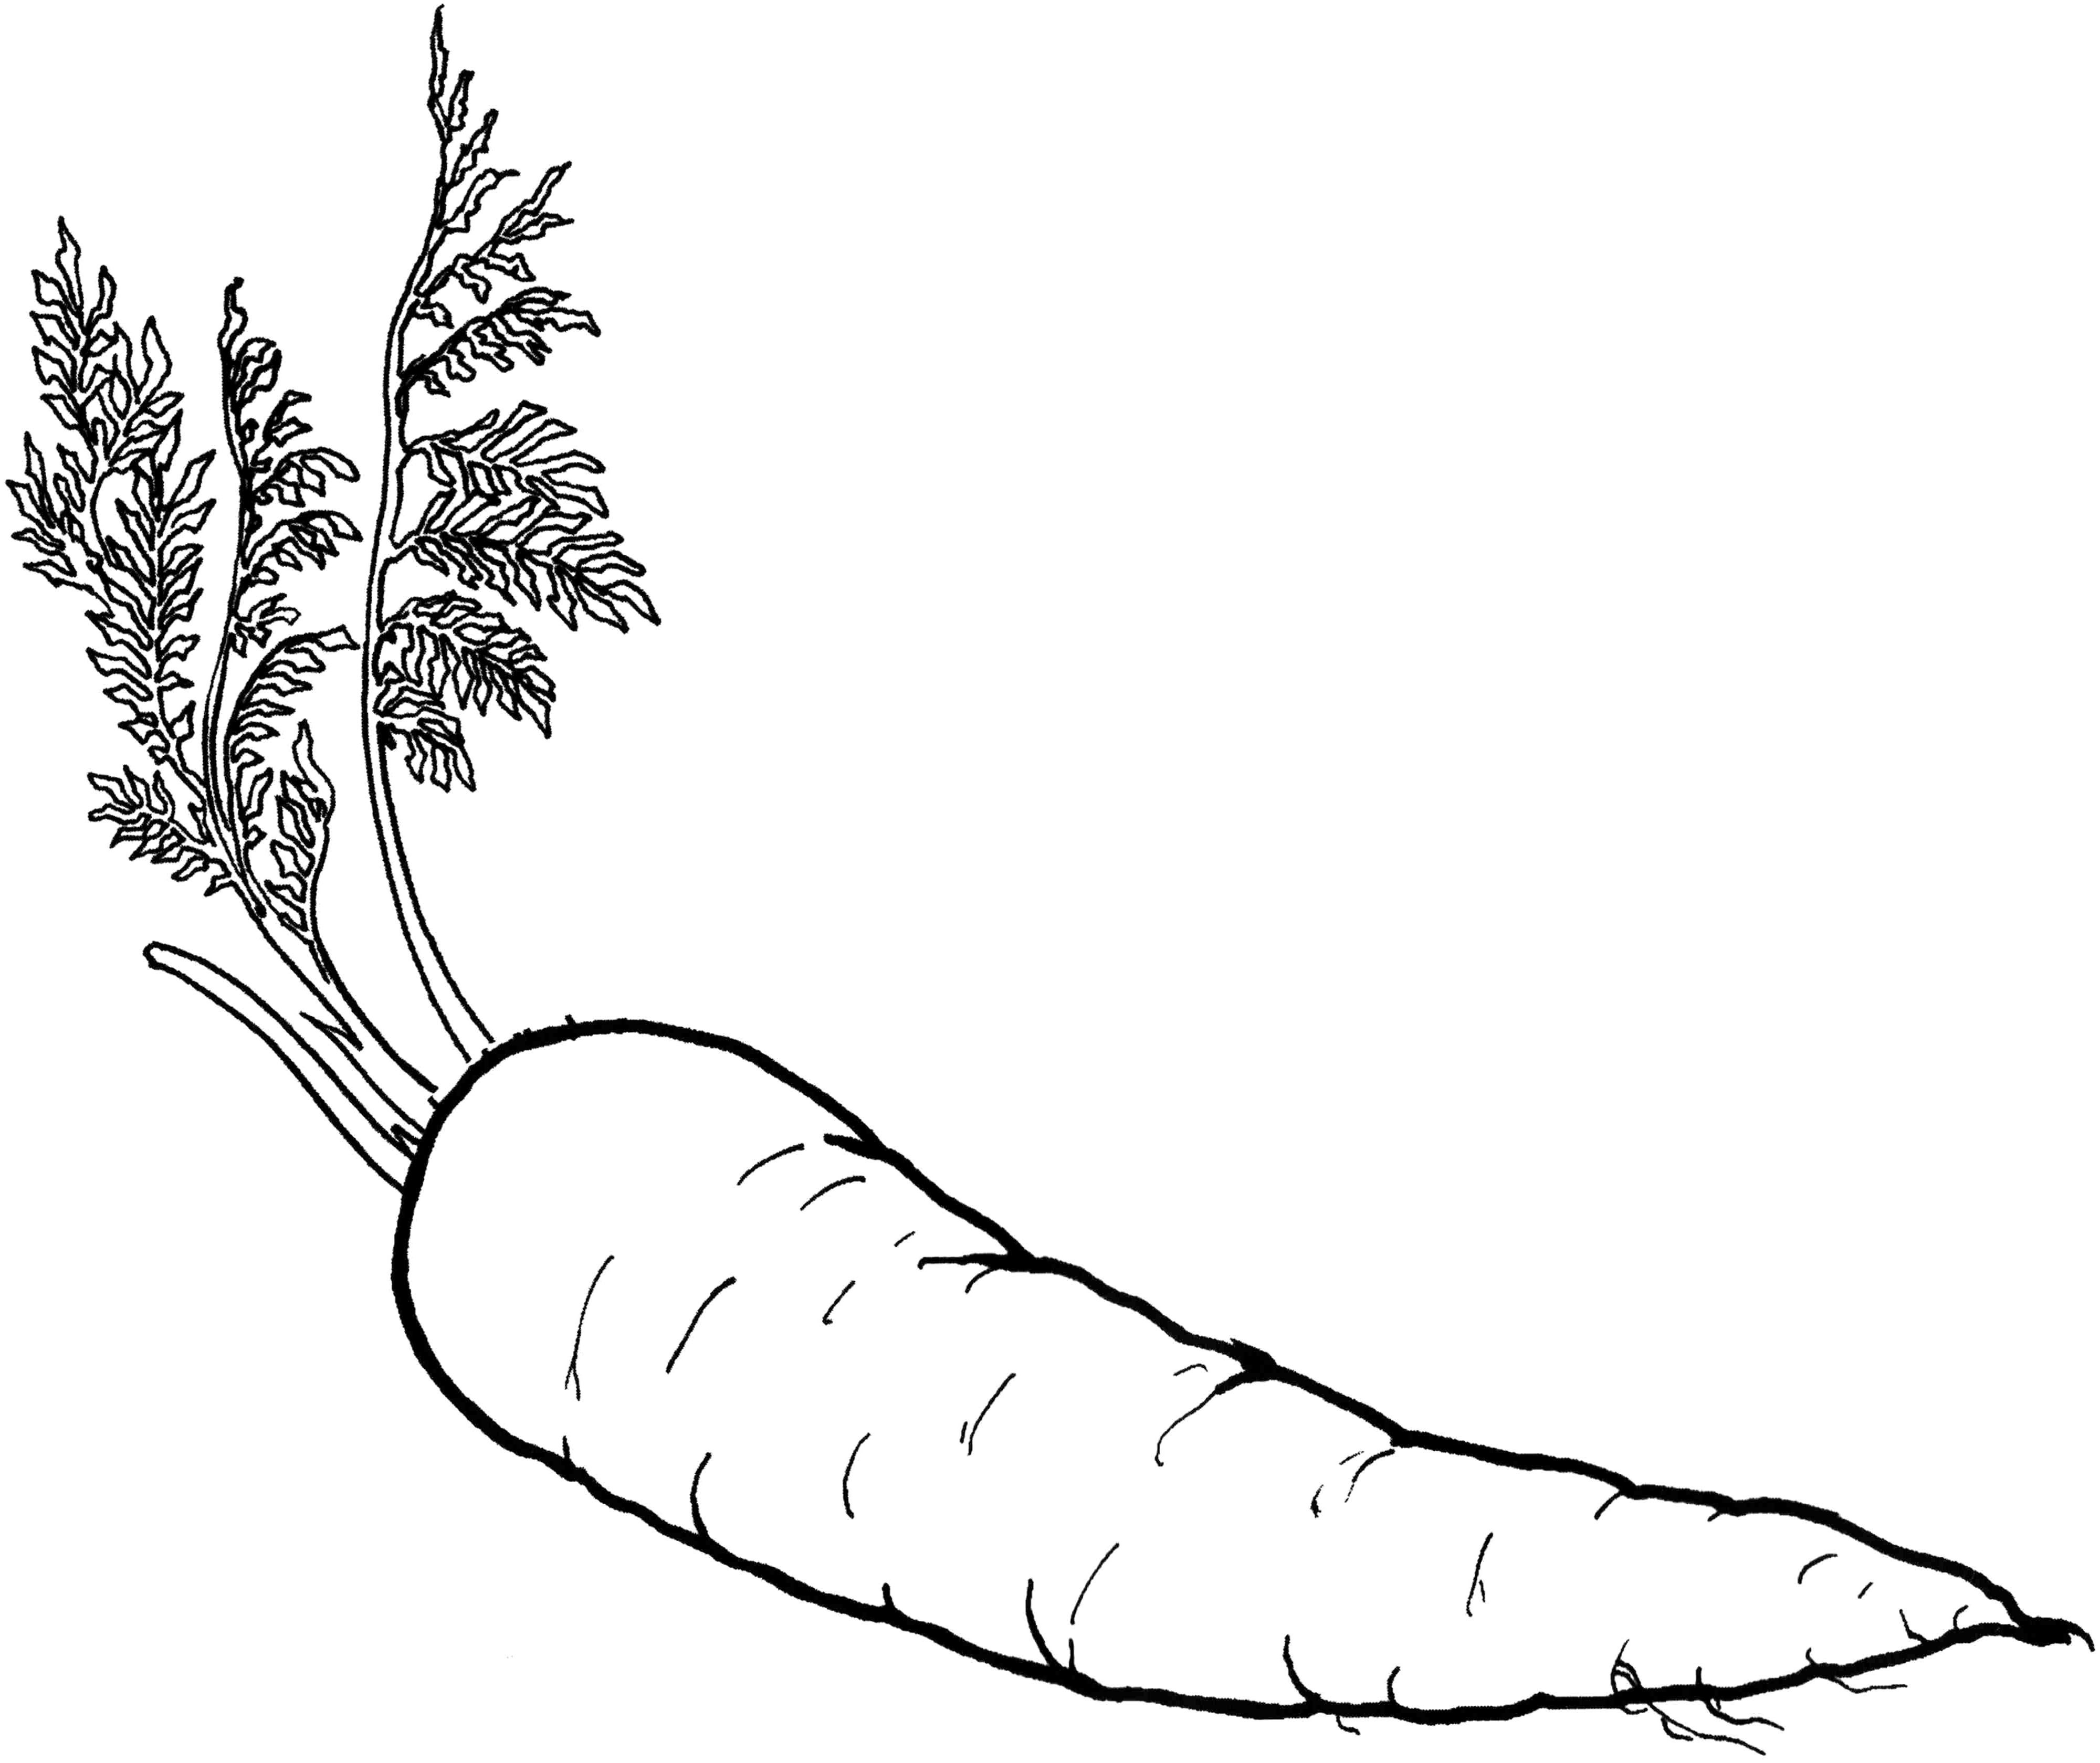 Healthy Food Of Carrot Vegetable Coloring Pages Food Coloring Pages Coloring Pages Vegetable Coloring Pages